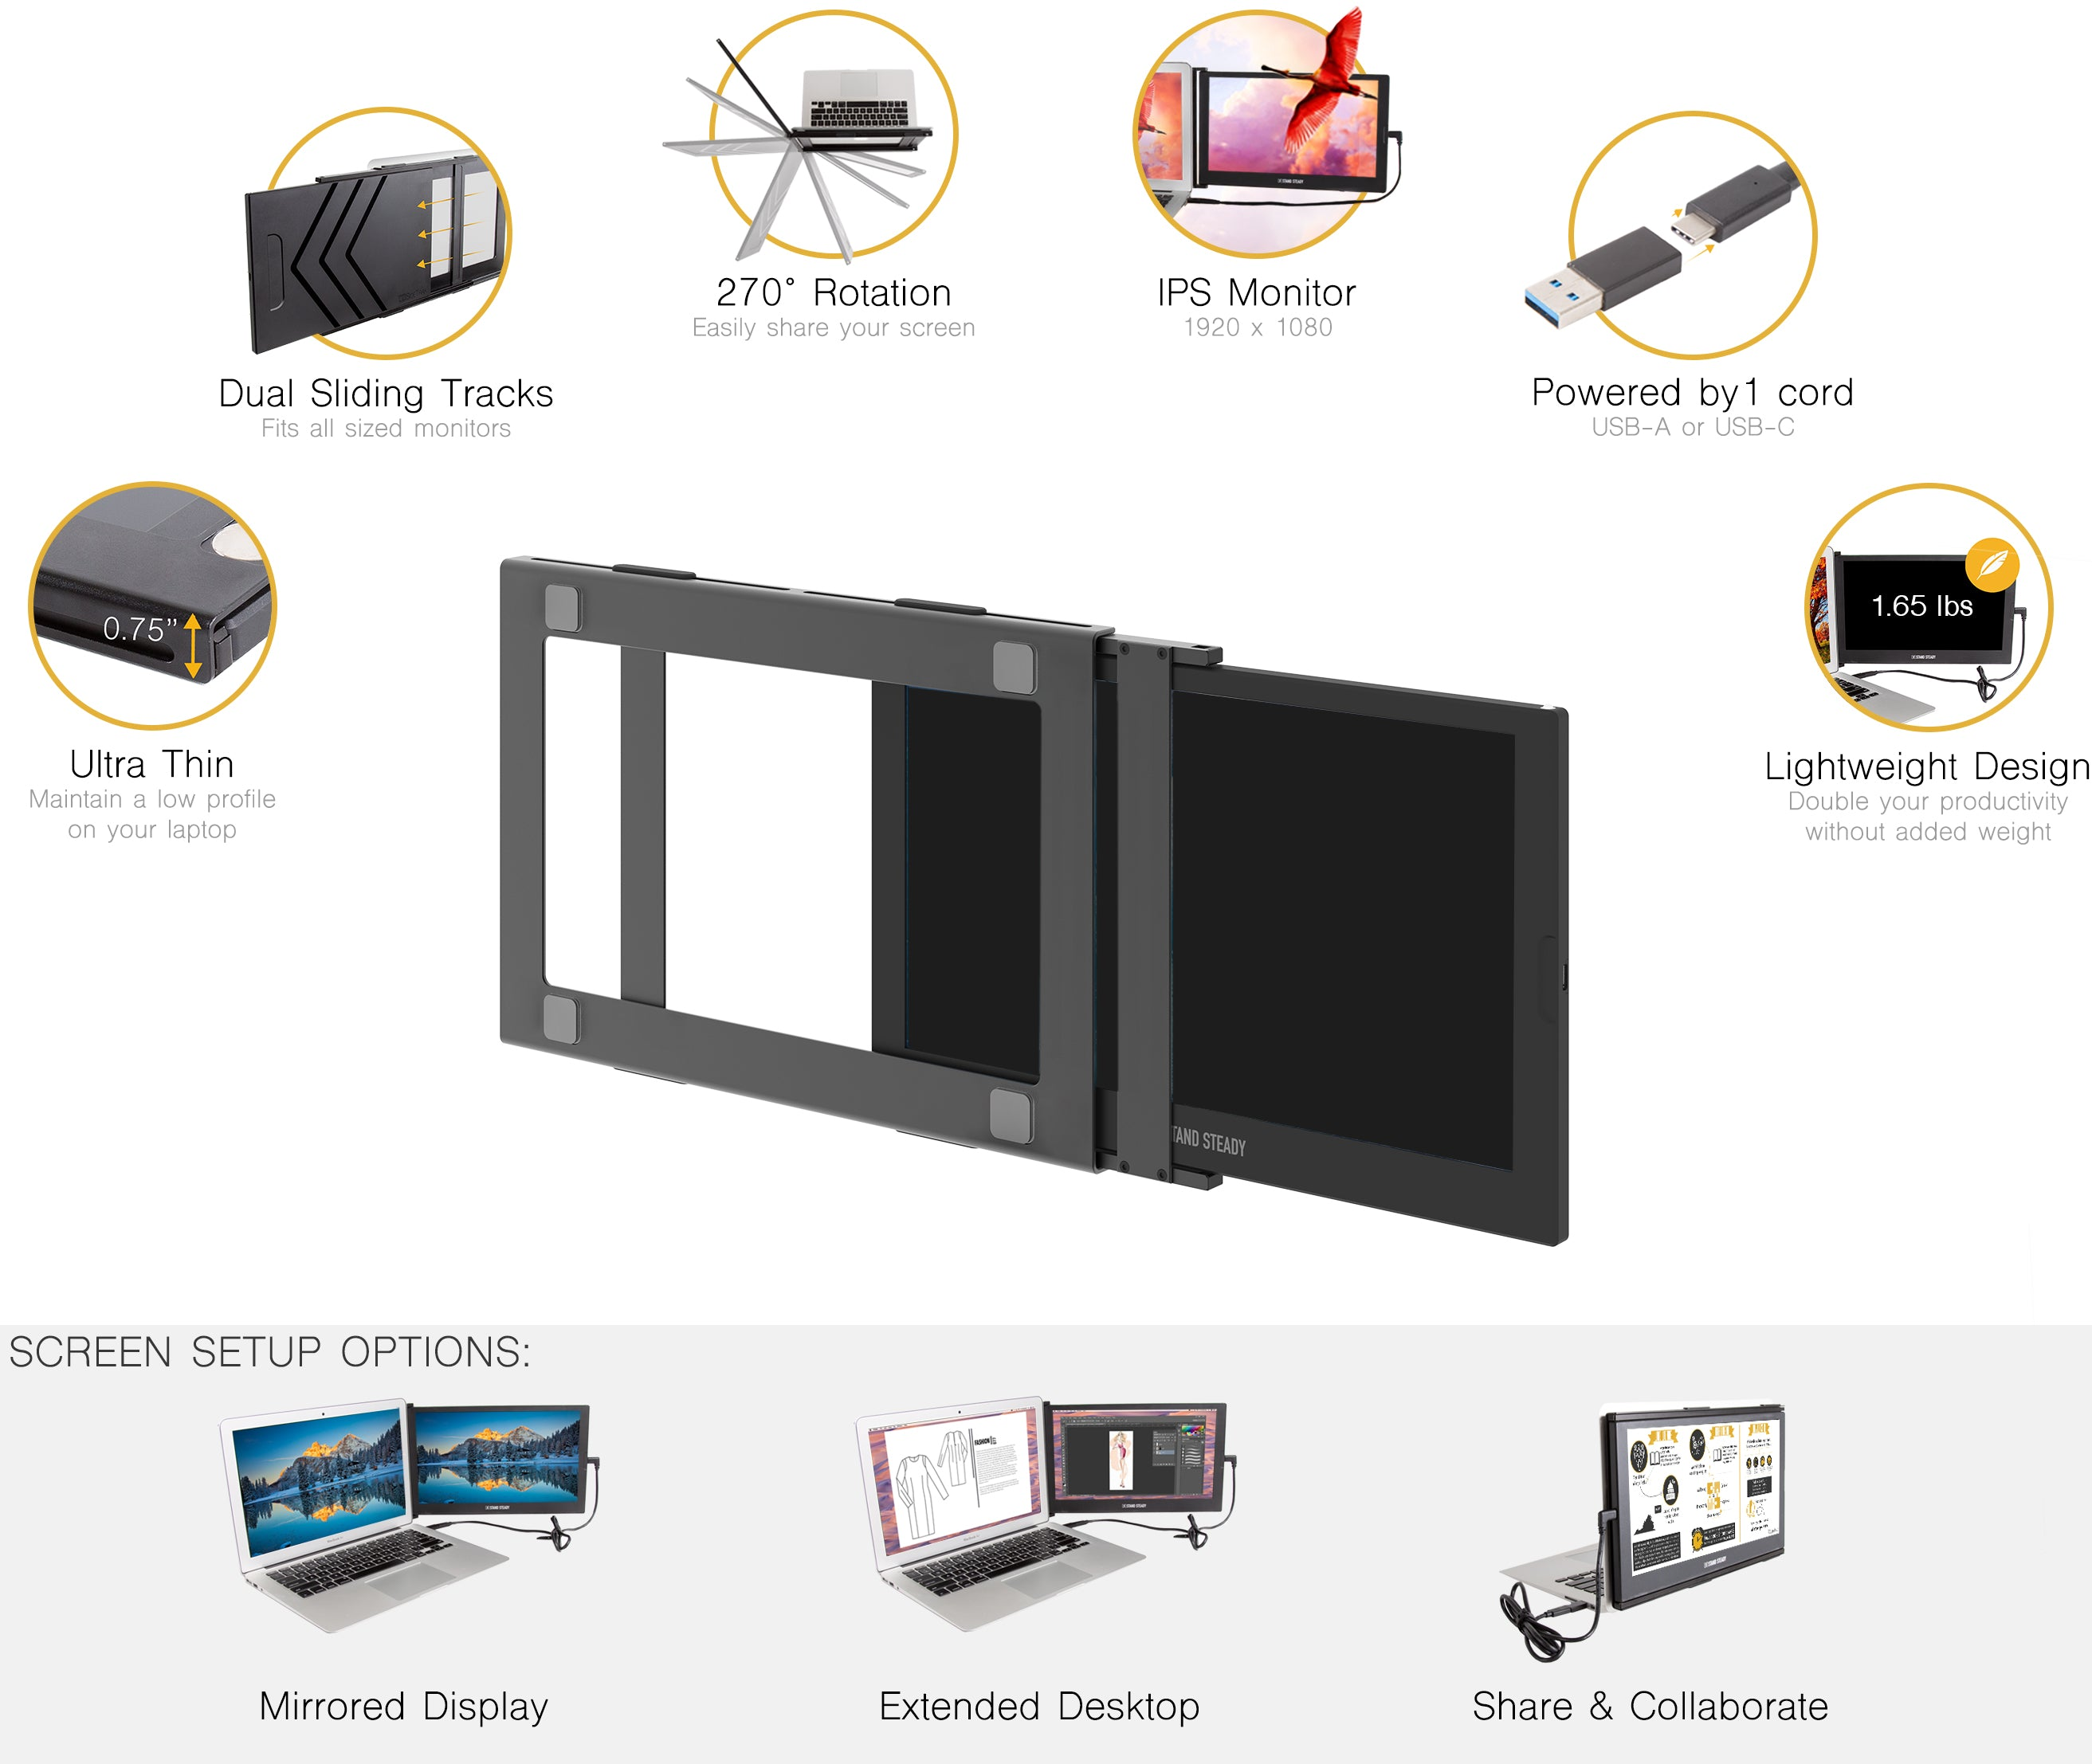 SideTrak portable USB monitor features and benefits